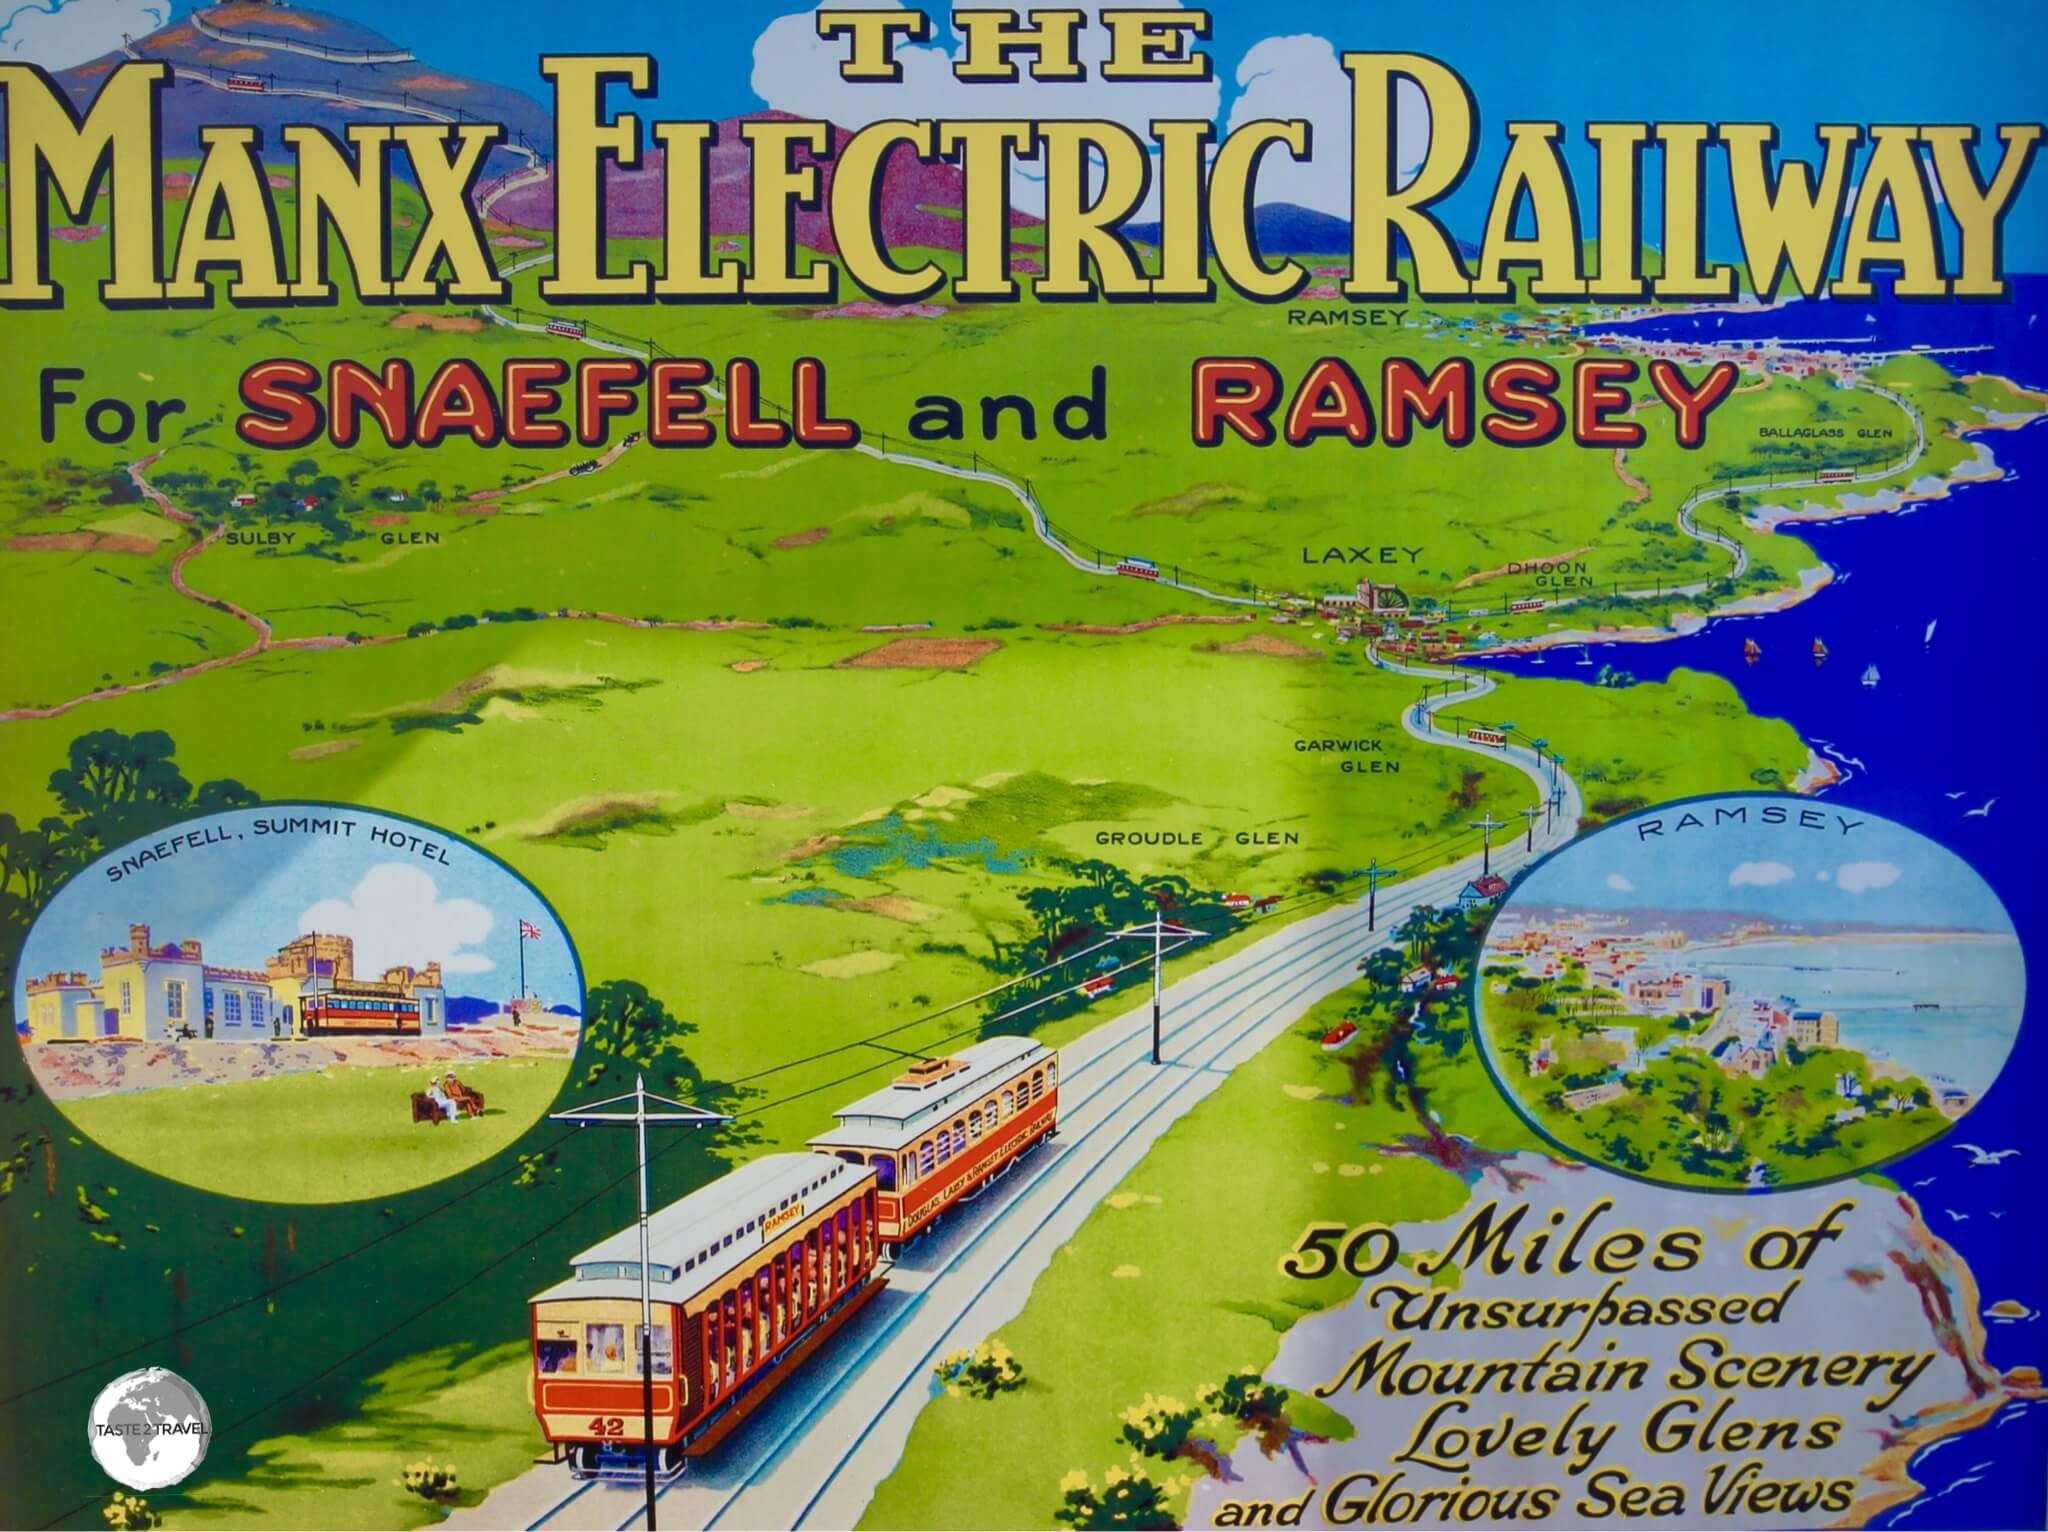 Isle of Man Travel Guide: Manx Electric Railway promotional poster.